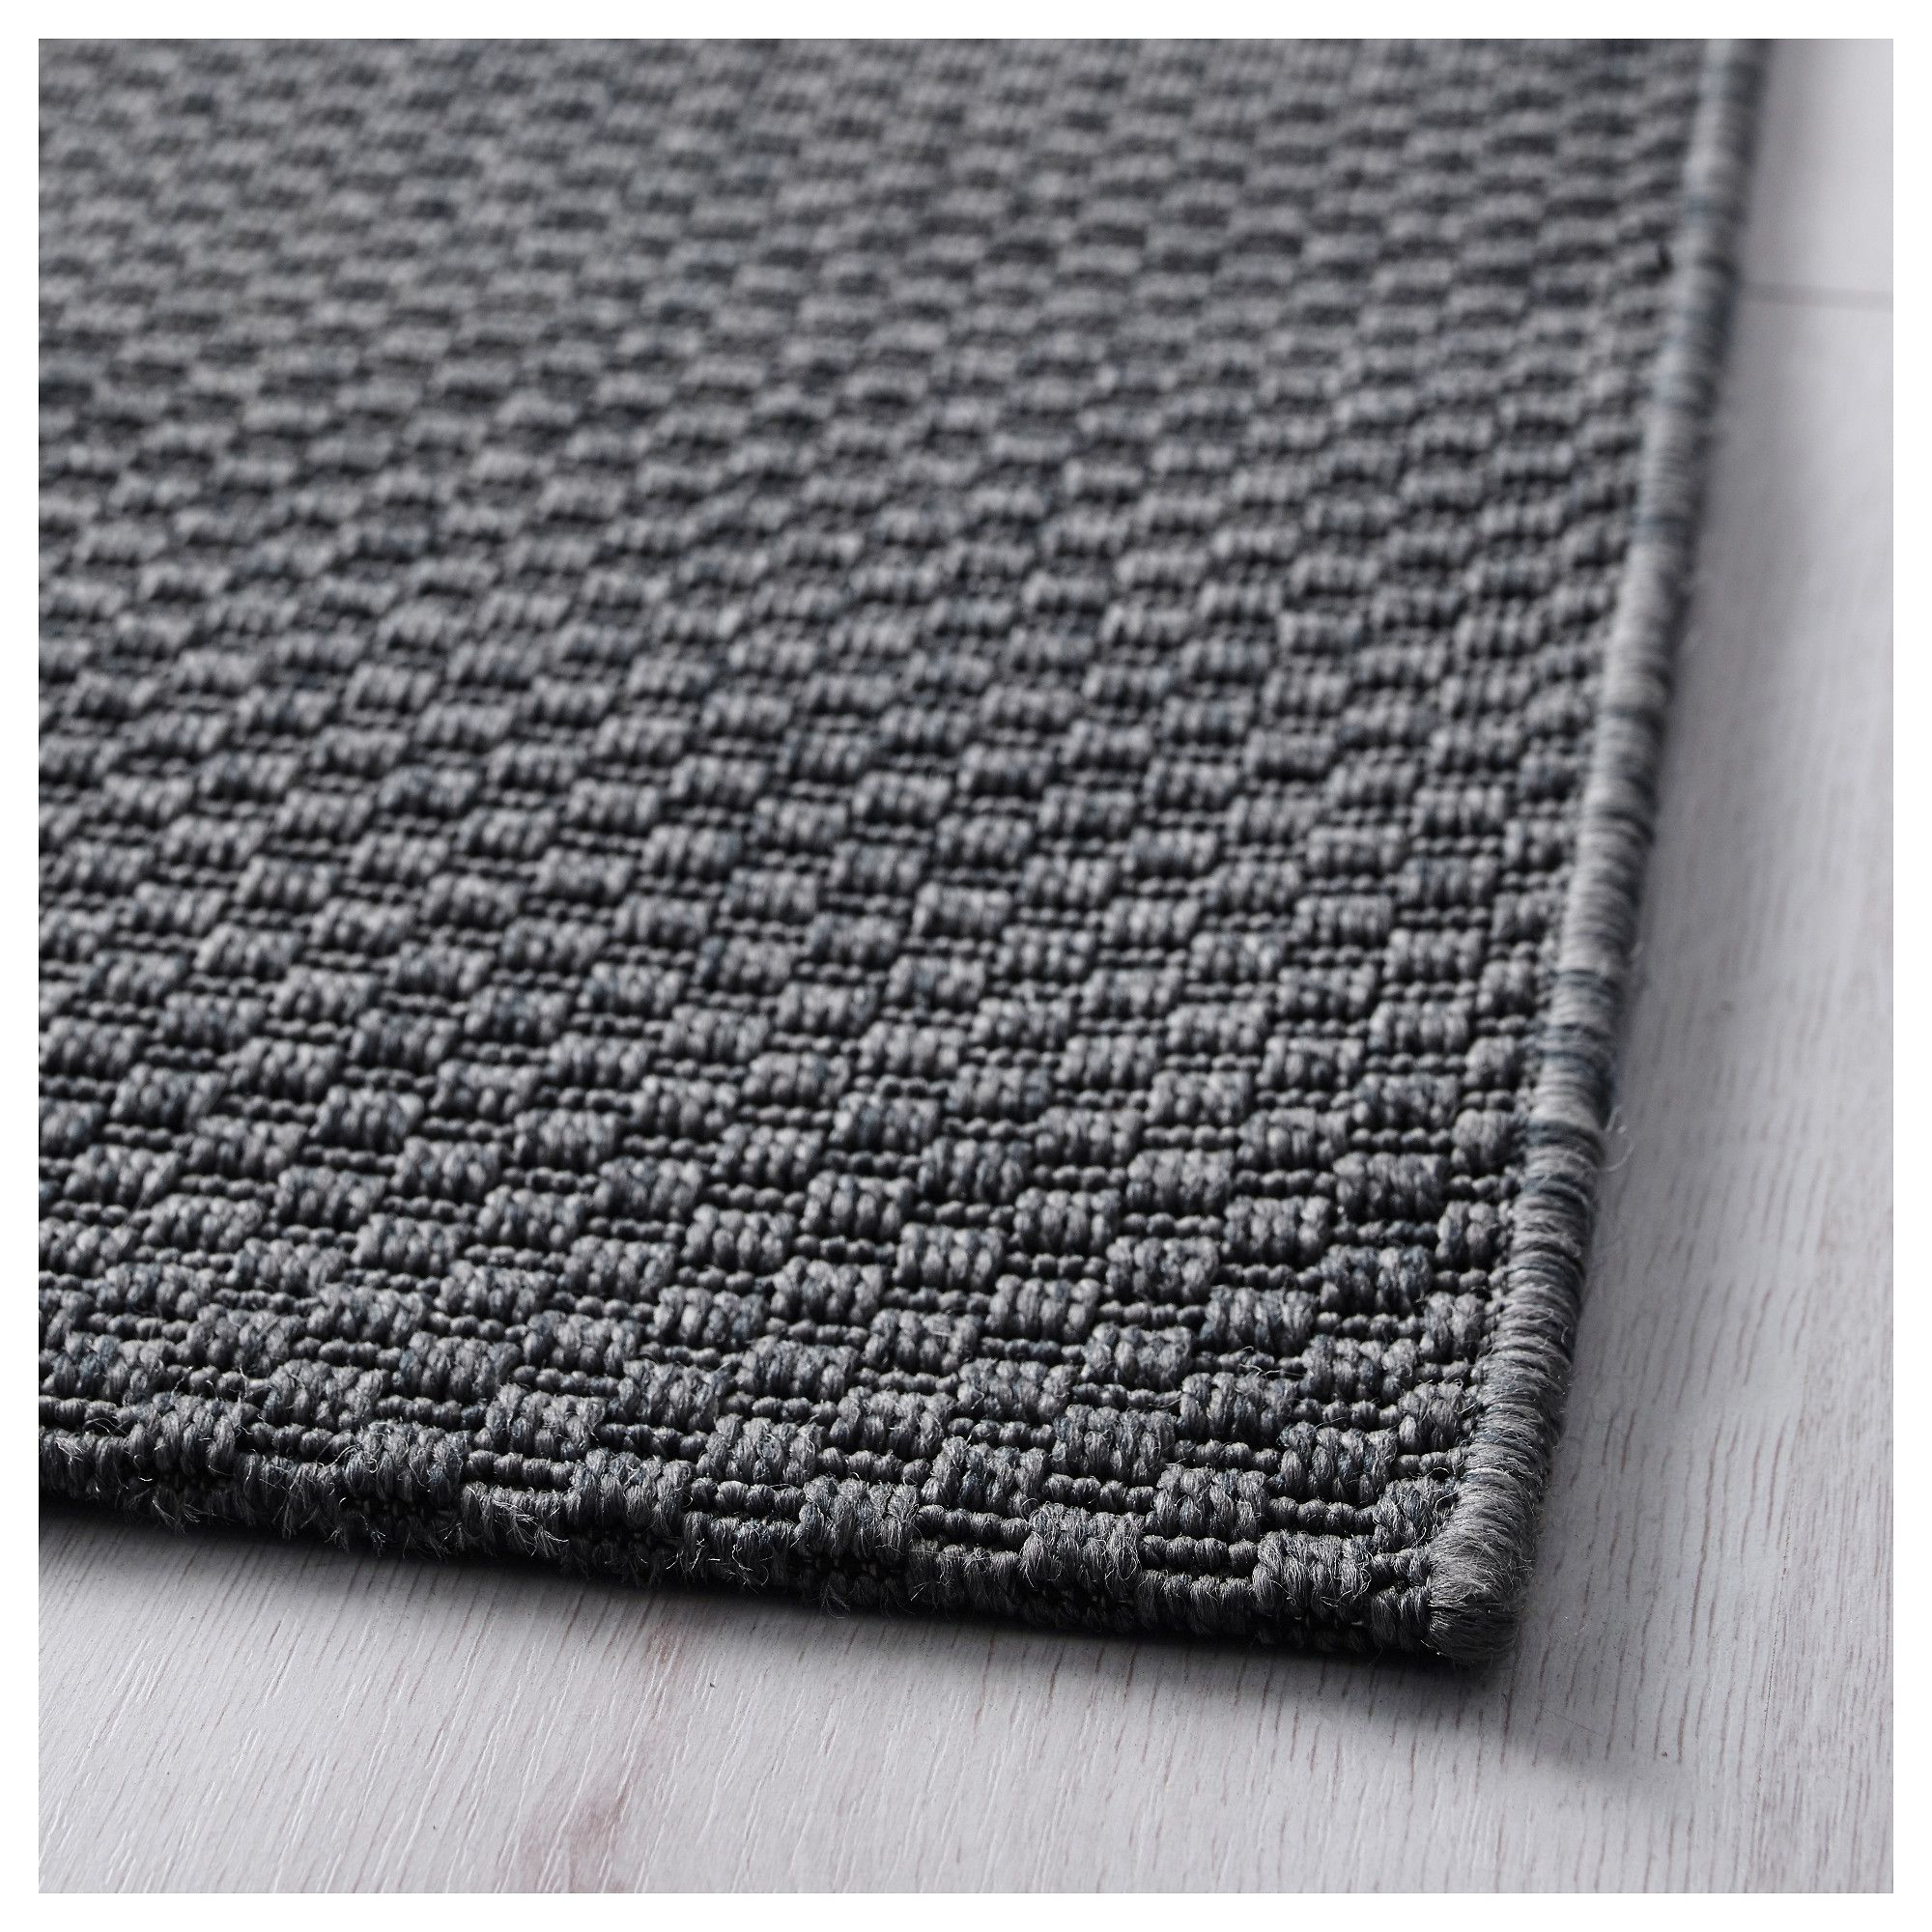 Esszimmer Teppich 300x400 Morum Rug Flatwoven In Outdoor Indoor Outdoor Dark Gray For